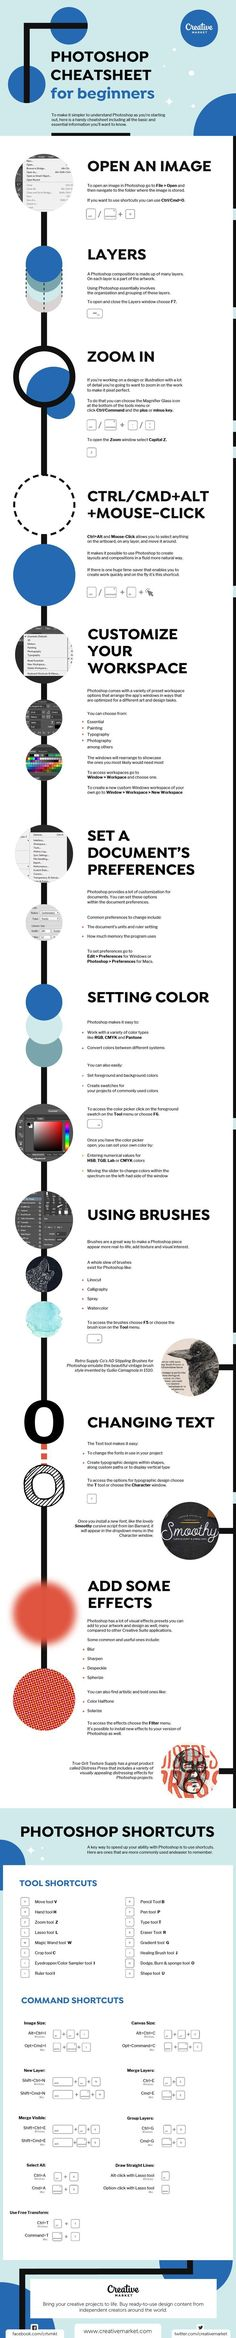 On the Creative Market Blog - Photoshop Cheatsheet for Beginners